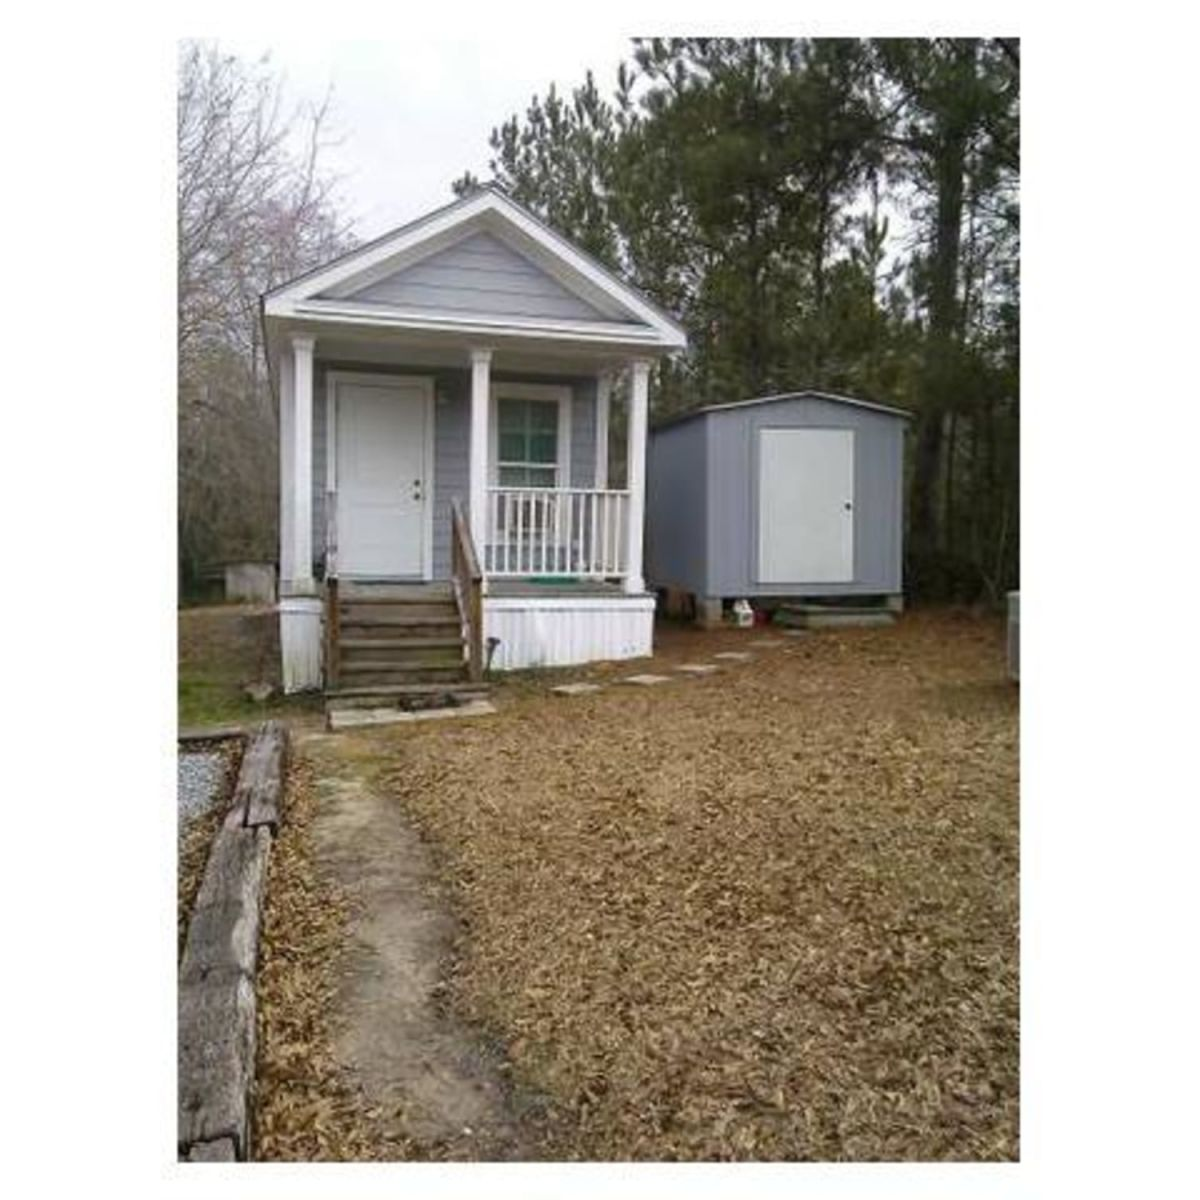 Surprising Katrina Cottage For Sale Tiny House For Sale In Poplarville Mississippi Tiny House Listings Home Interior And Landscaping Transignezvosmurscom